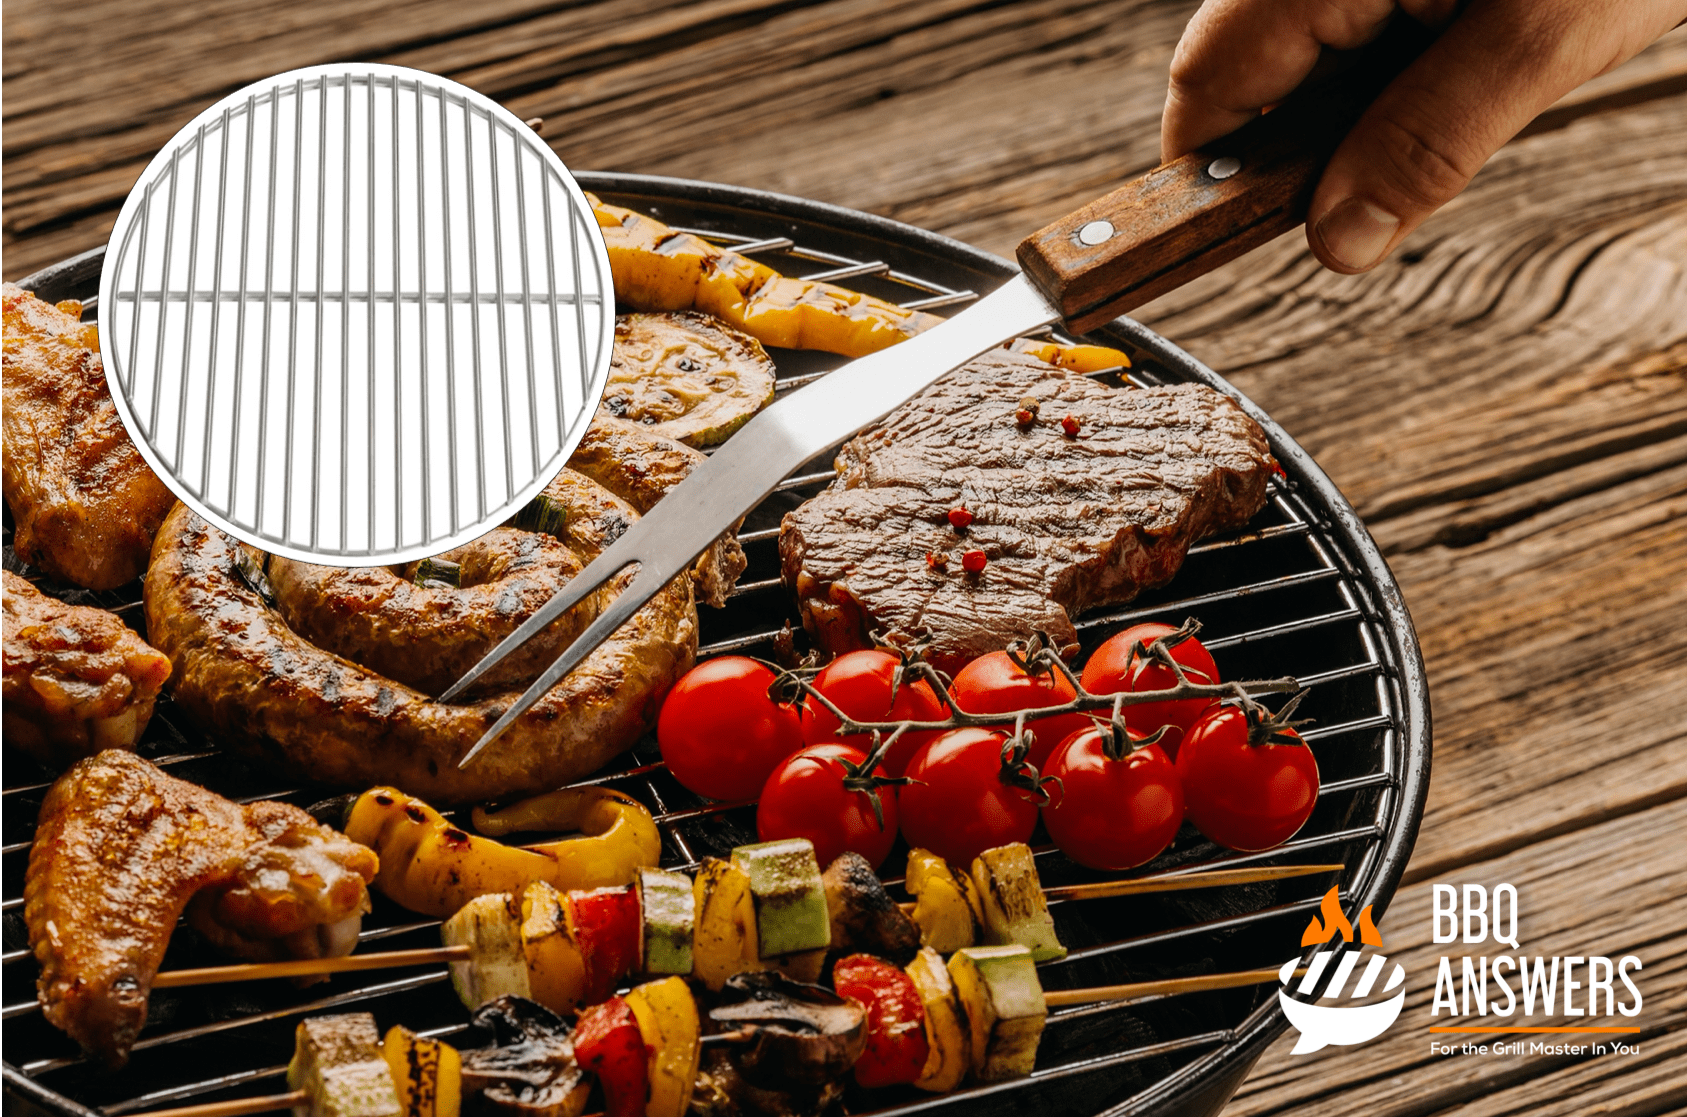 Chrome-Plated Steel Grates | BBQanswers